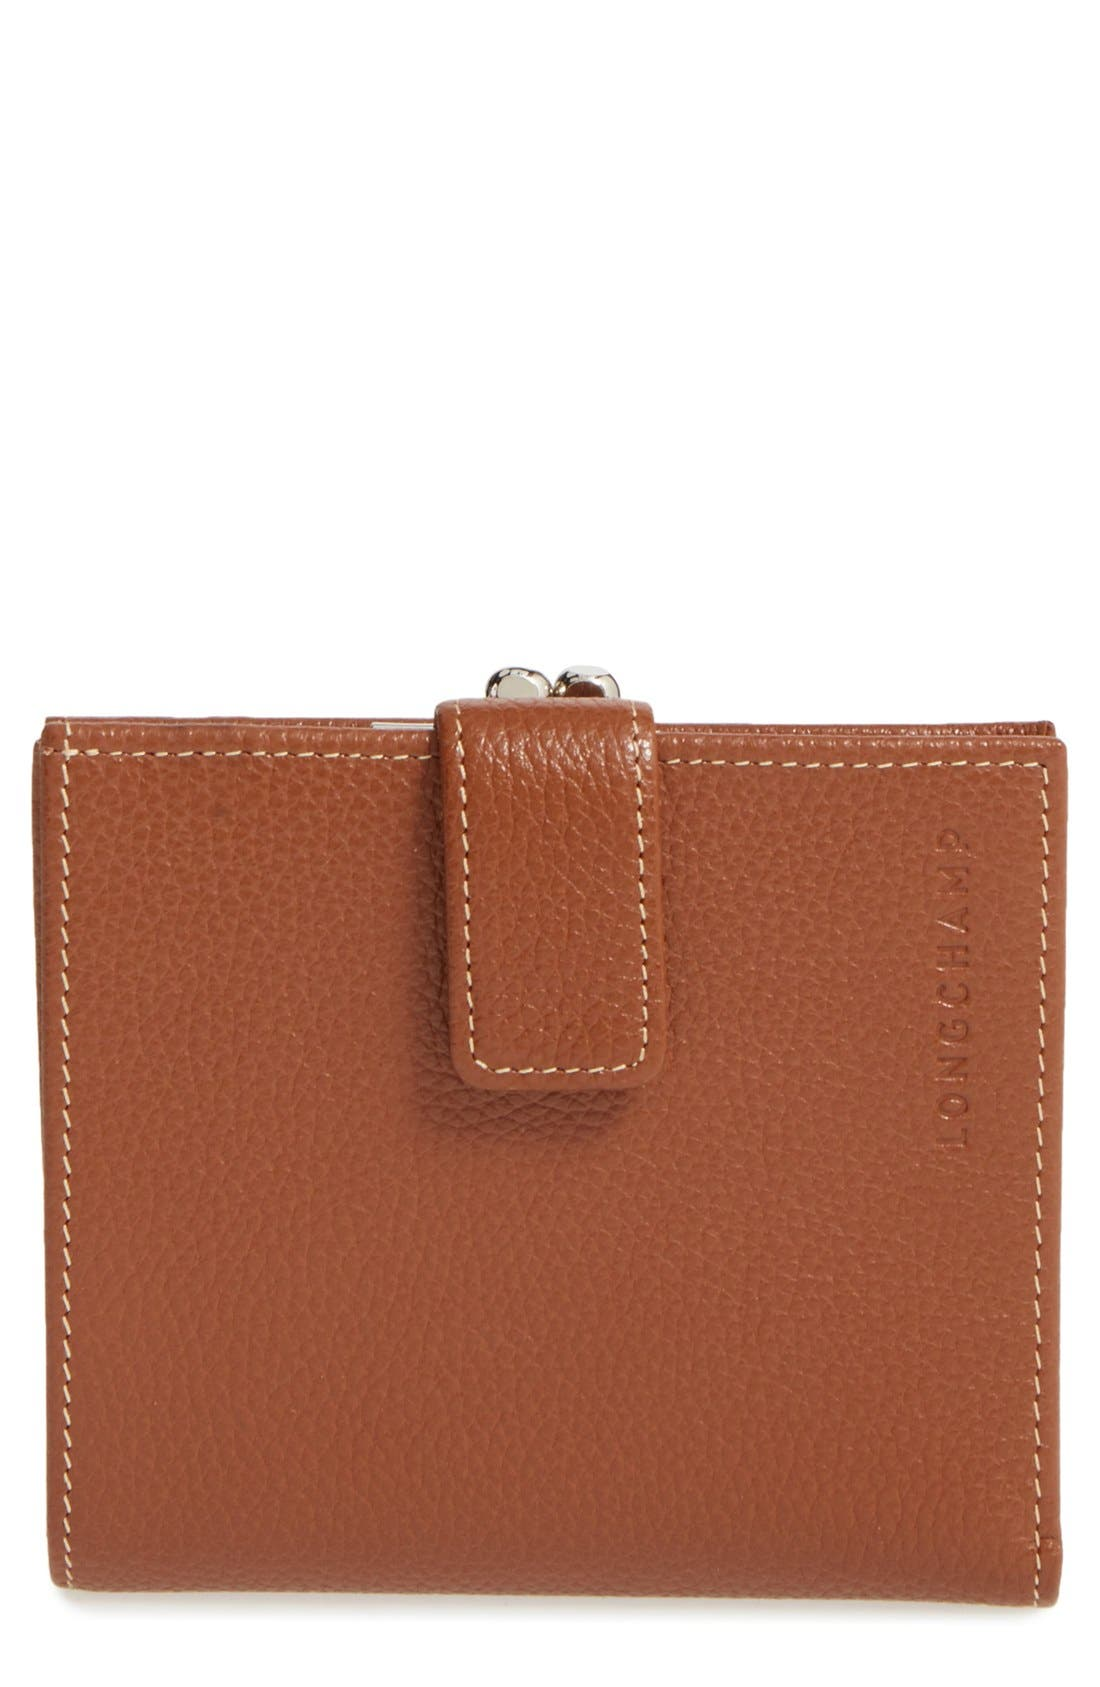 Longchamp 'Le Foulonne' Pebbled Leather Wallet